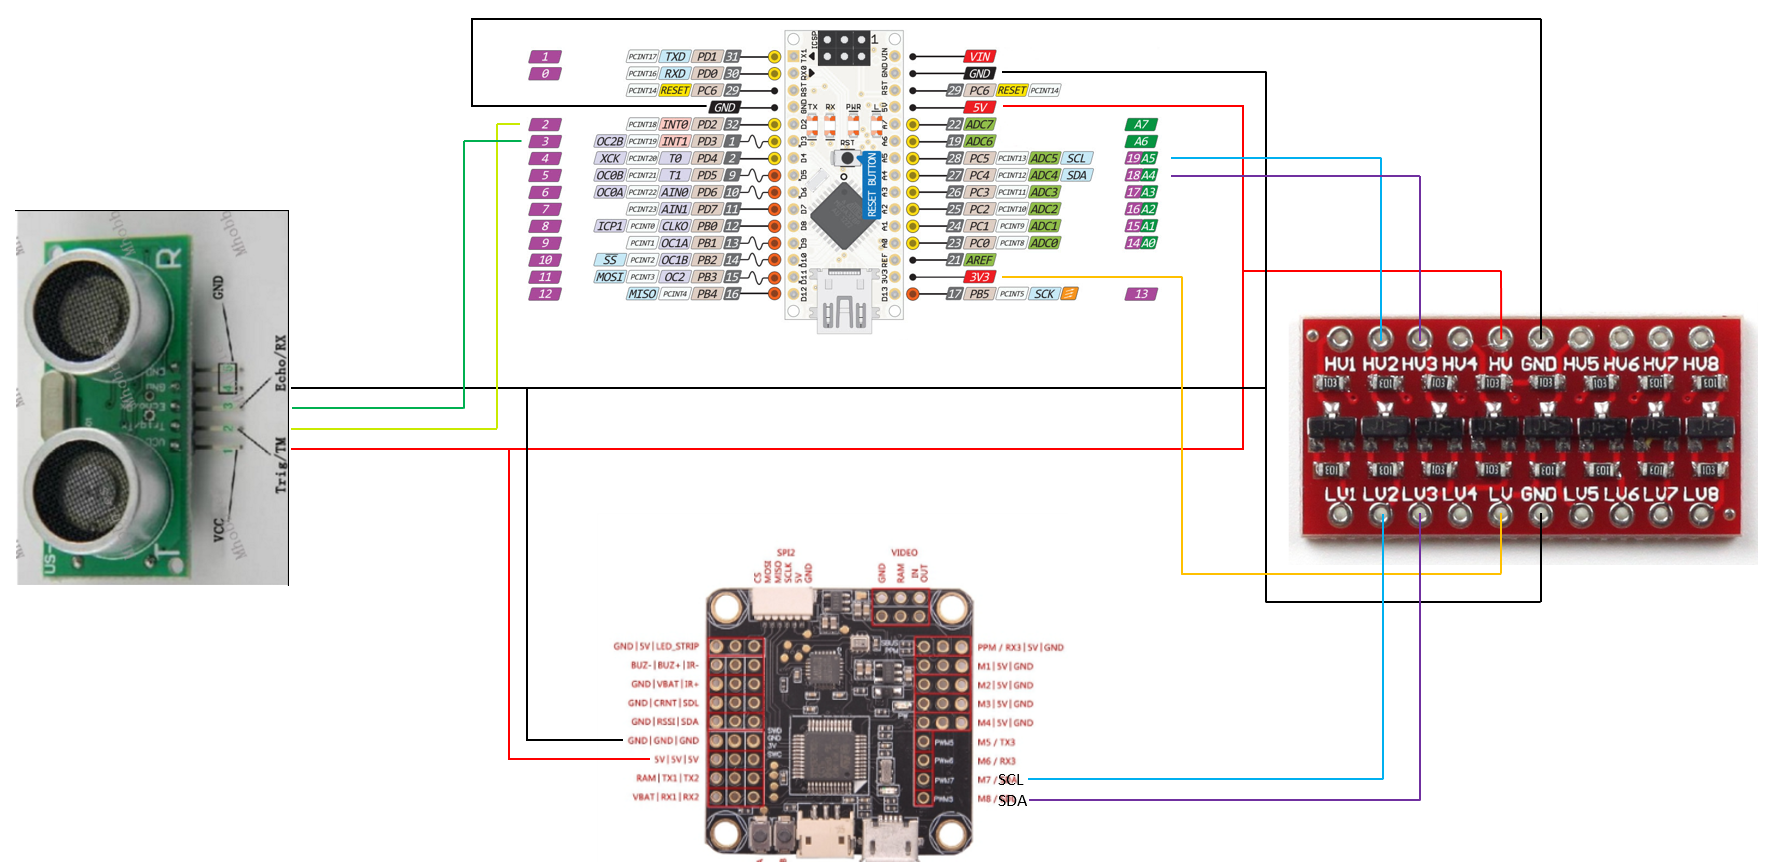 Developers - Sonar module I2C -